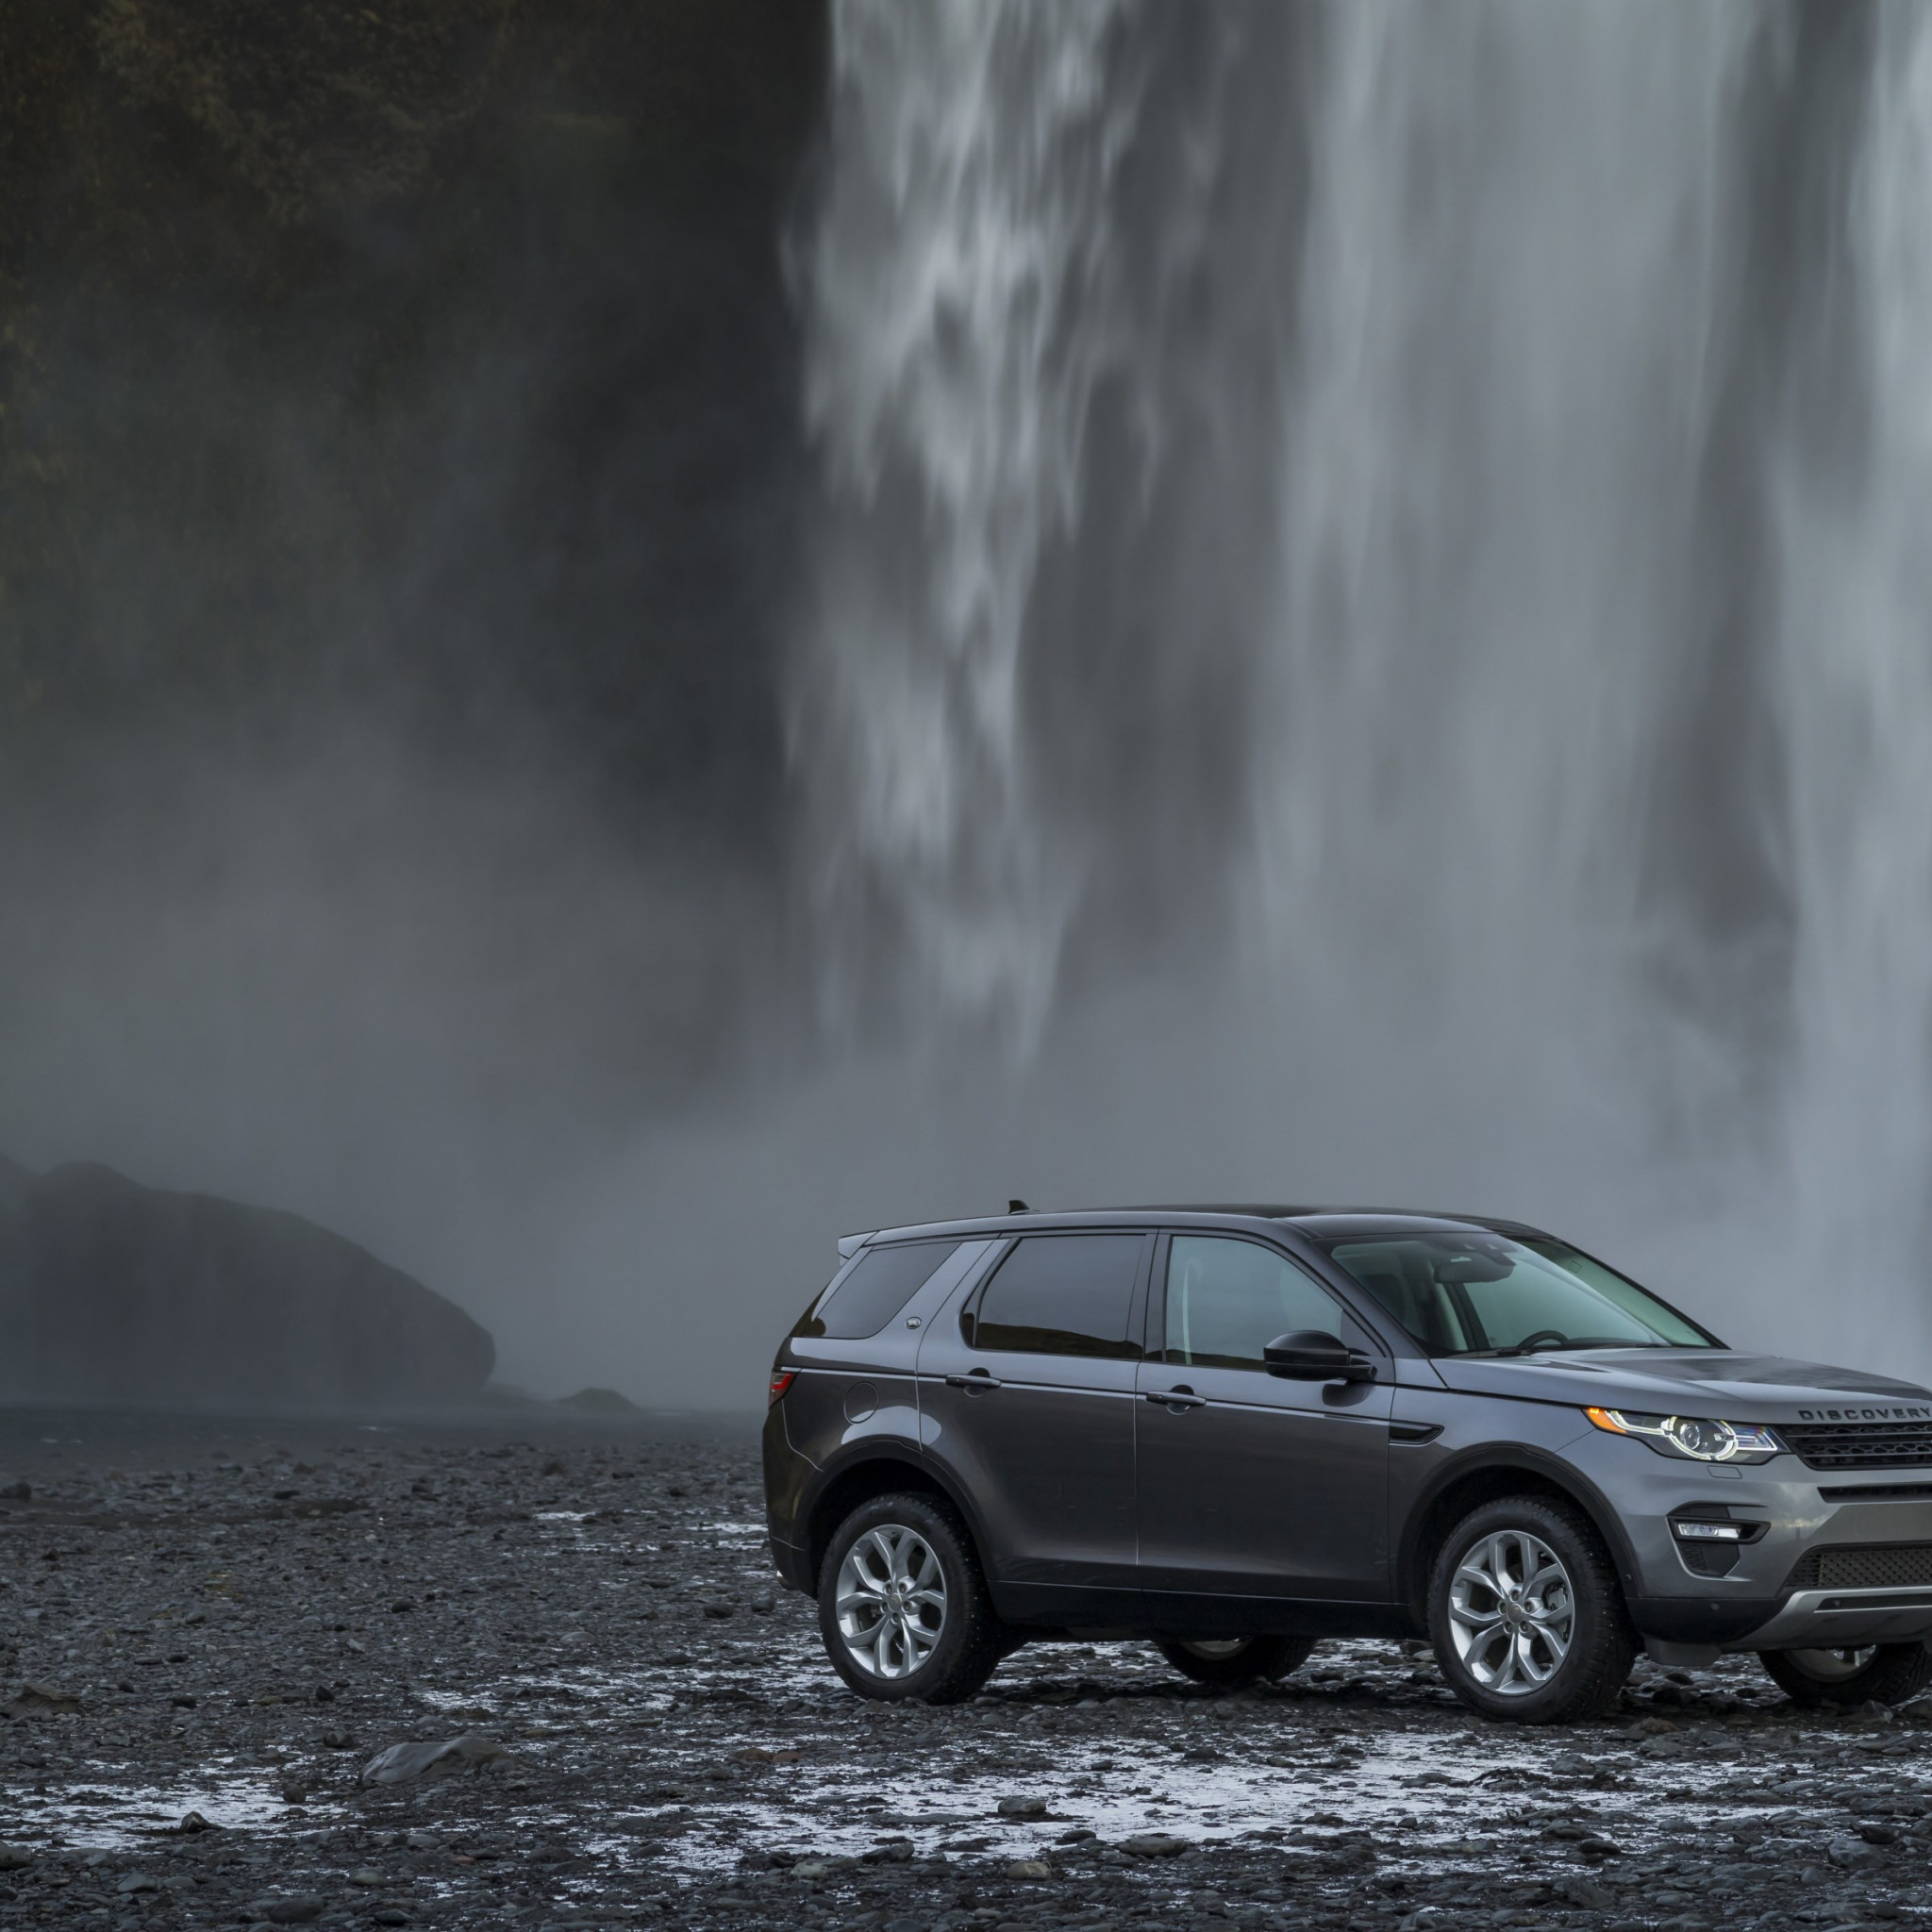 Land Rover Discovery Sport wallpaper 2048x2048